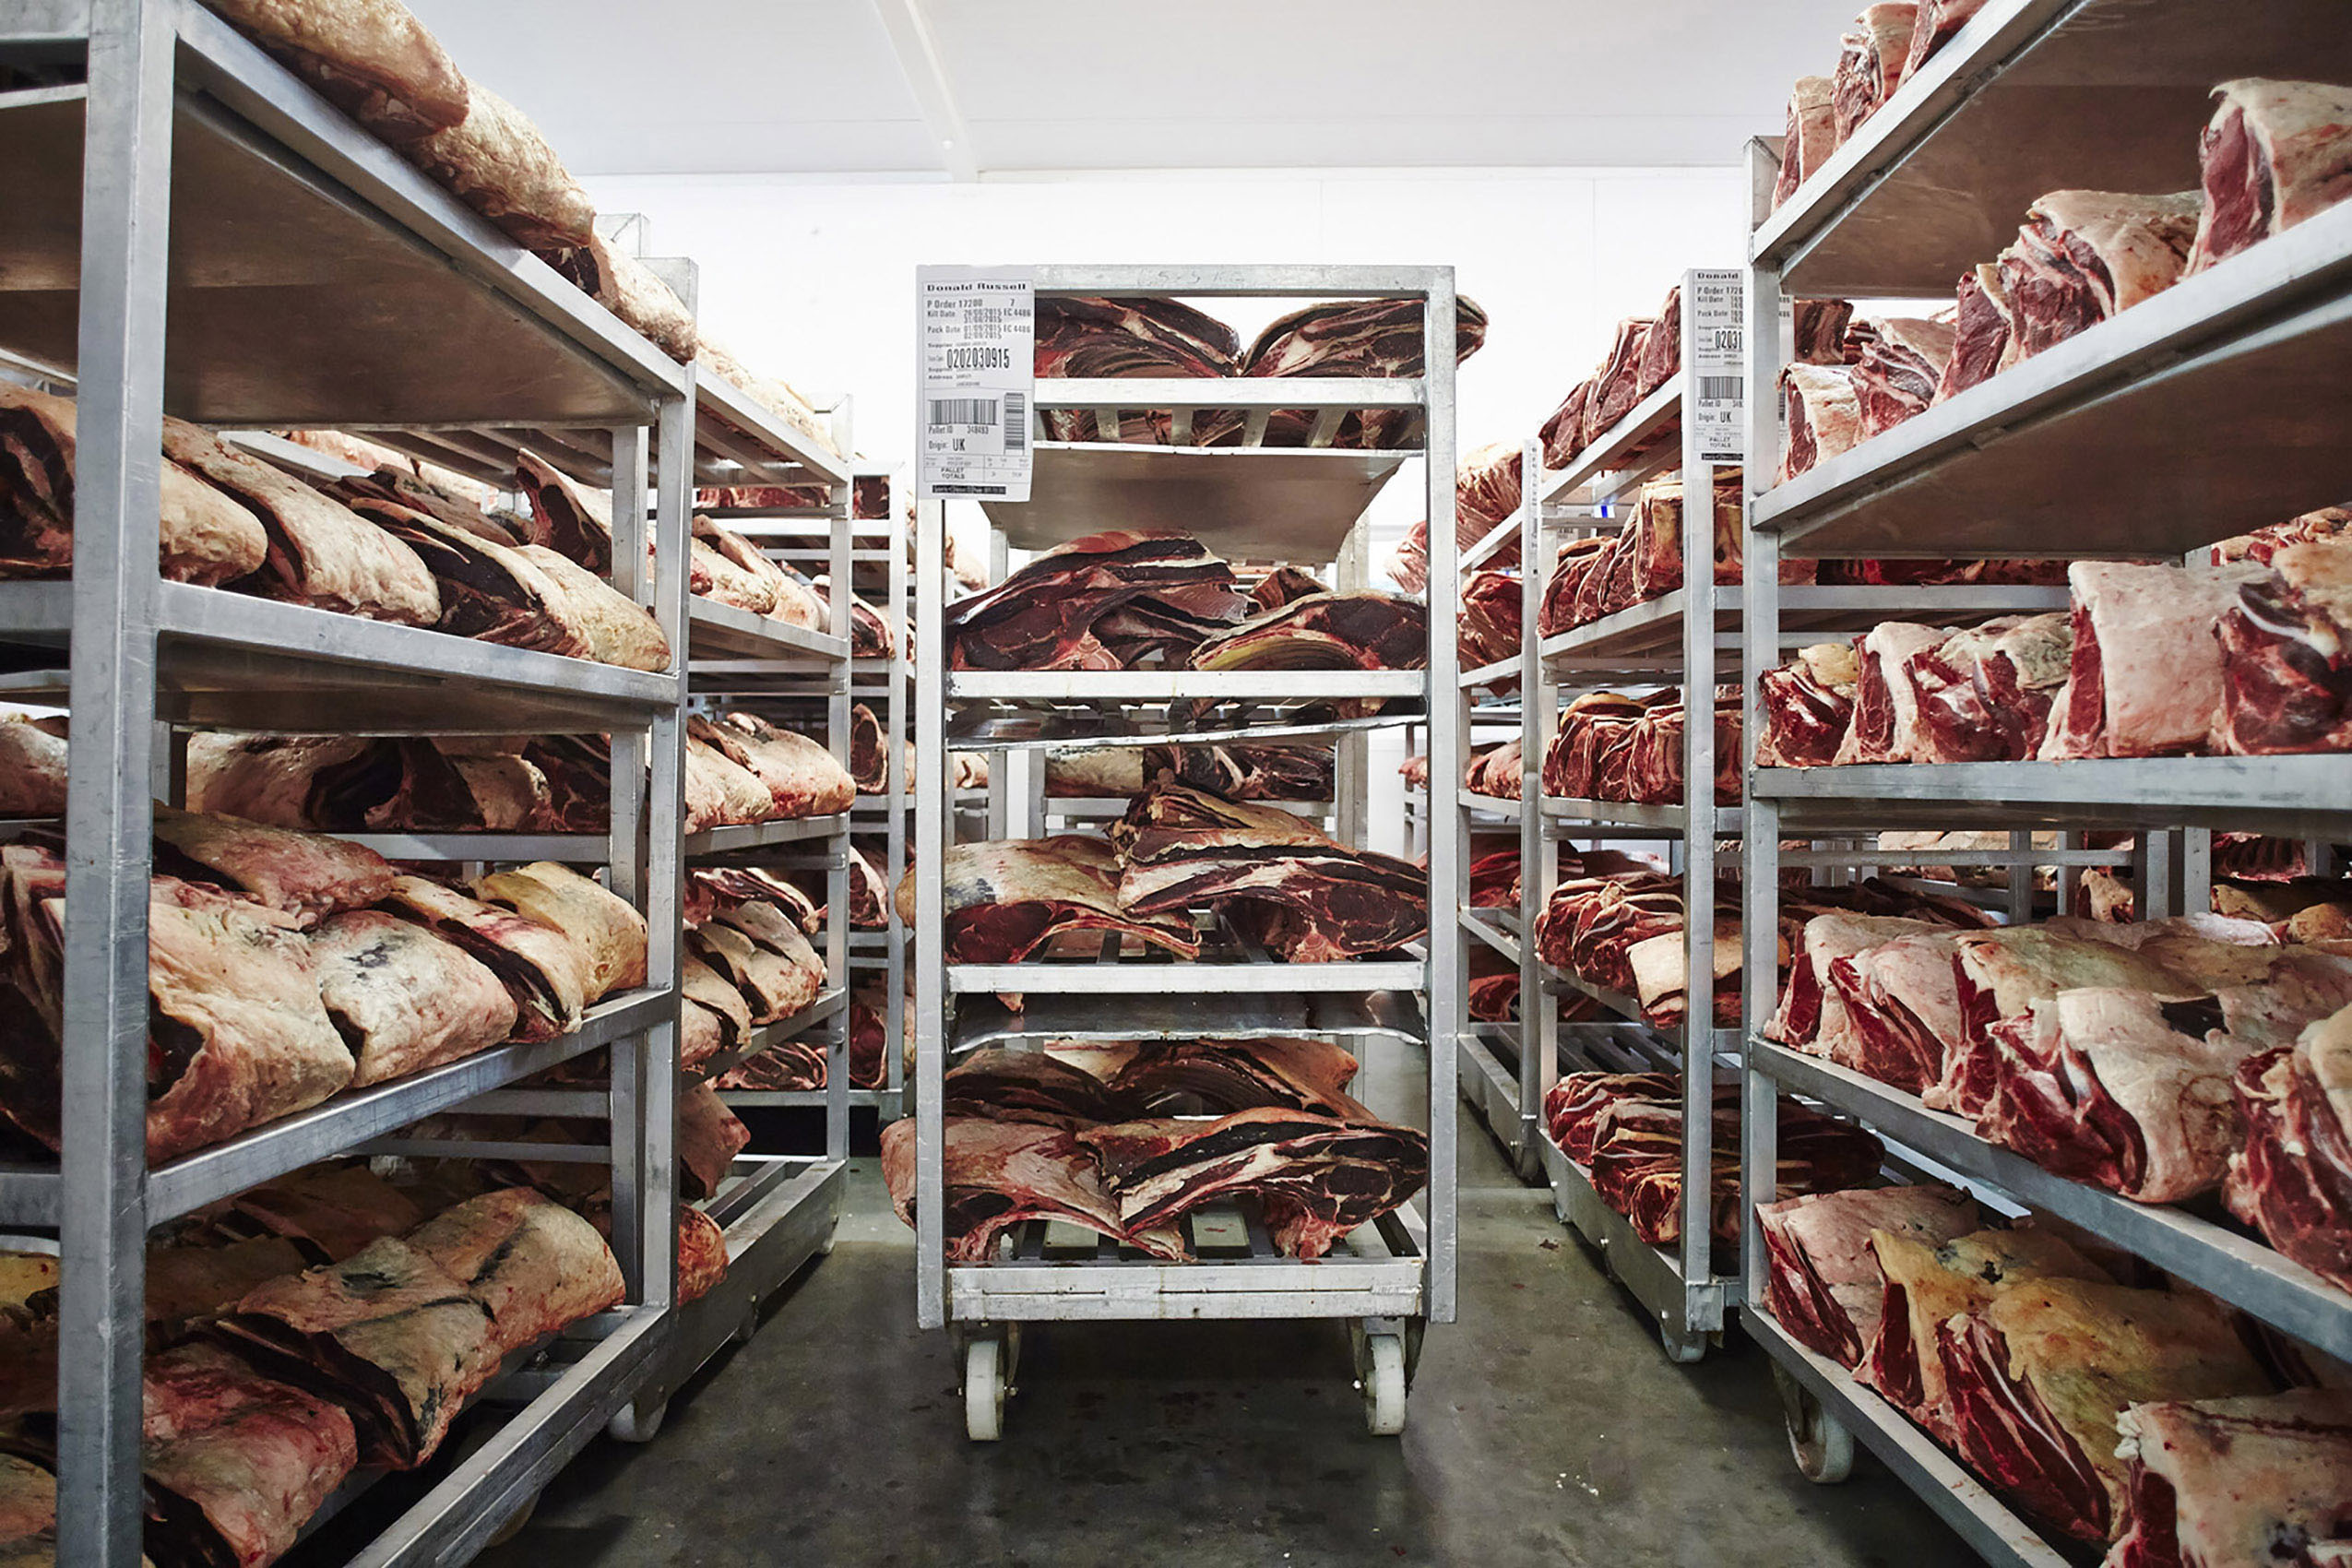 SteveRyan_Photographer_Ingredients_Produce_Meat_Butcher_DryAging_Beef_ColdRoom_22